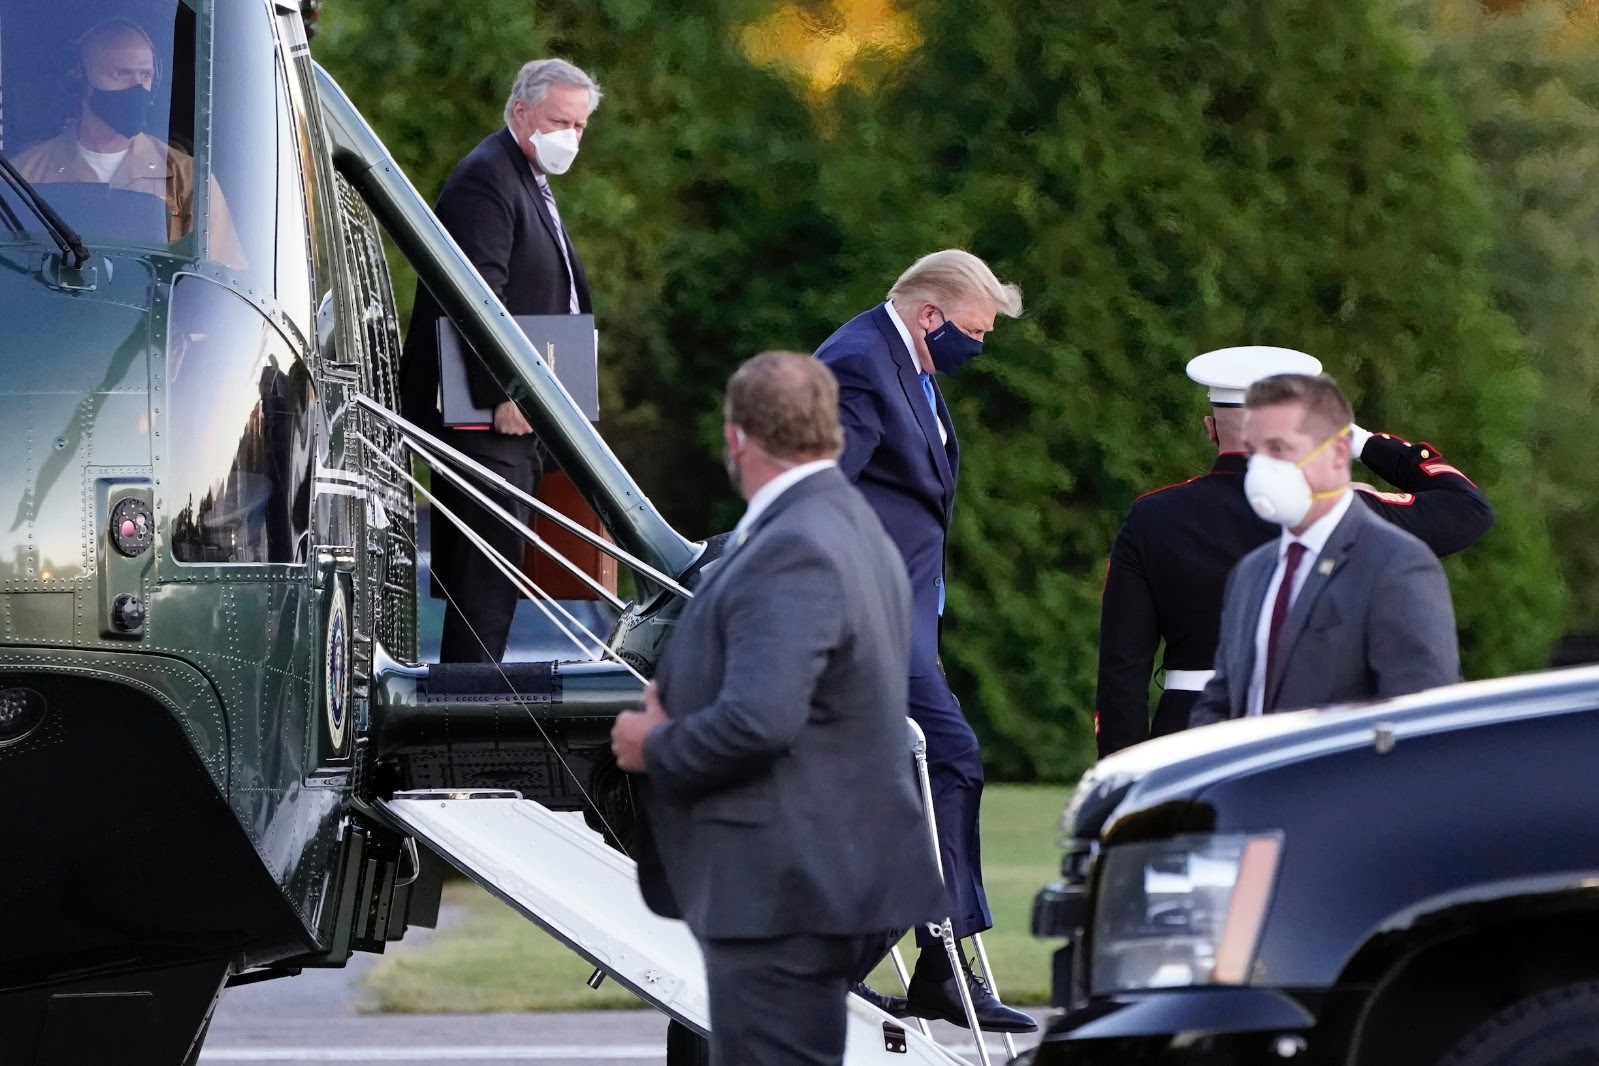 President Donald Trump arrives at Walter Reed National Military Medical Center, in Bethesda, Md., Friday, Oct. 2, 2020, on Marine One helicopter after he tested positive for COVID-19. White House chief of staff Mark Meadows is at left. (AP Photo/Jacquelyn Martin)